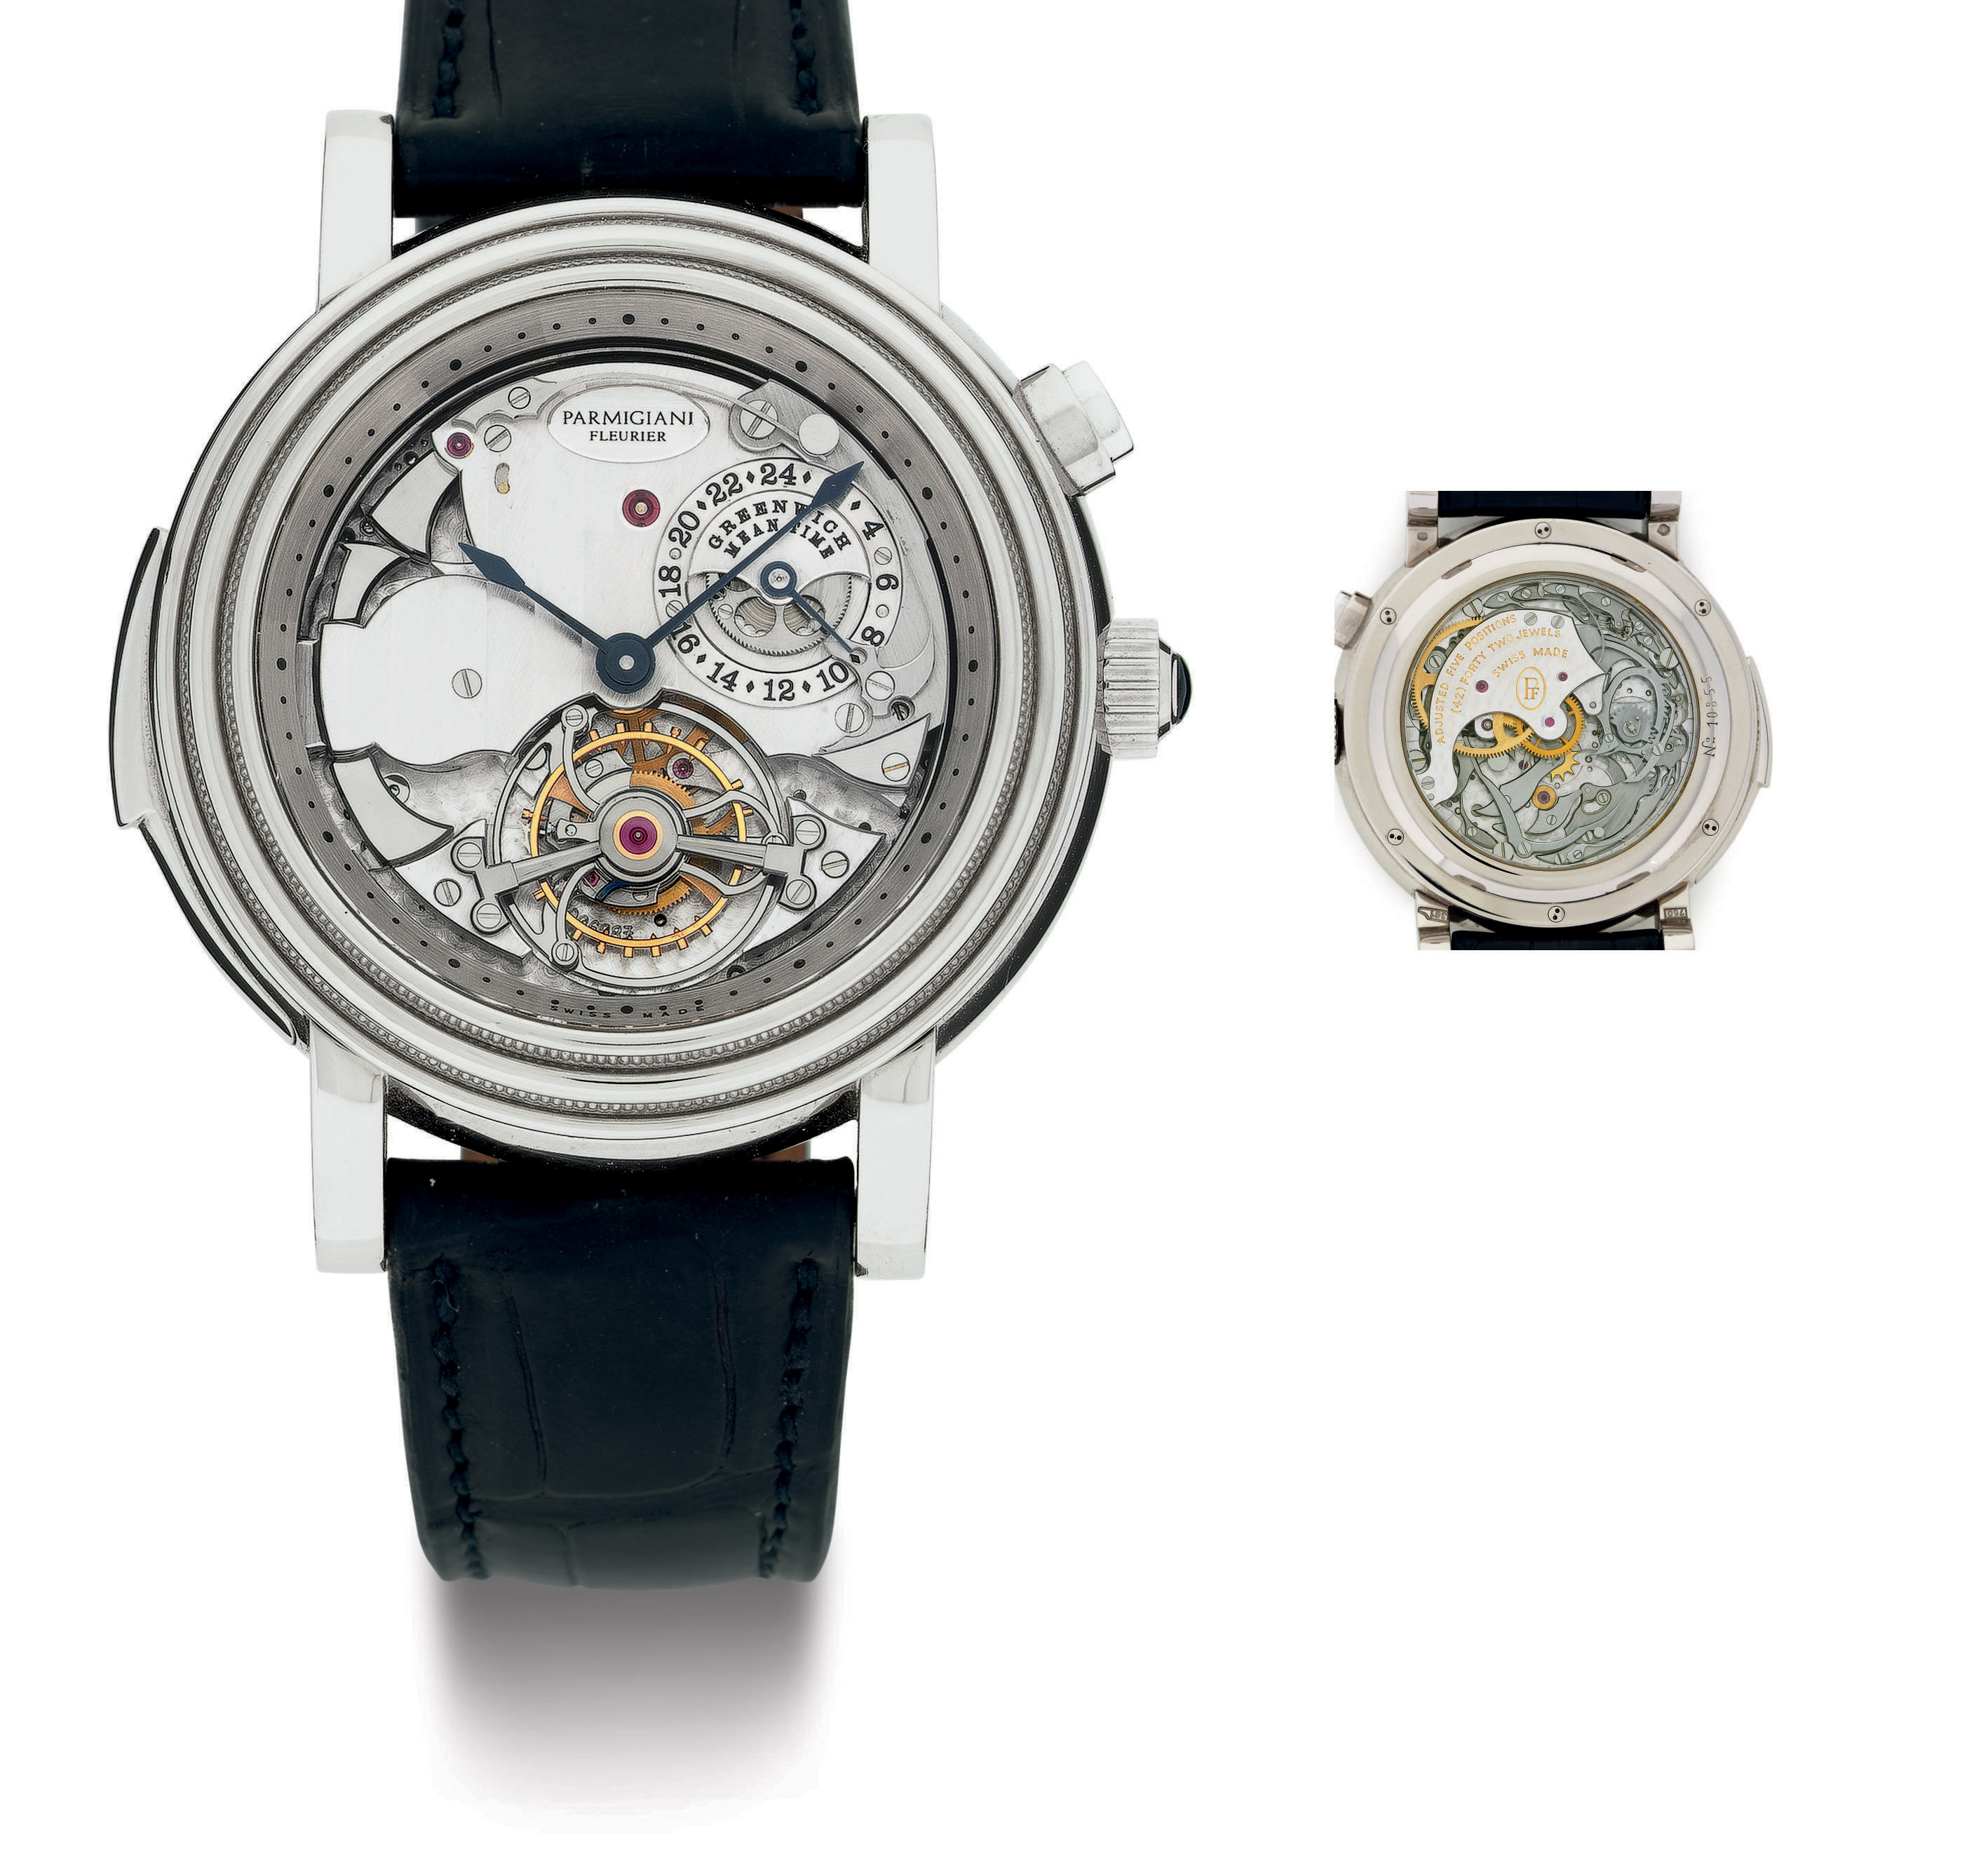 PARMIGIANI FLEURIER.  A RARE AND IMPORTANT SKELETONIZED 18K WHITE GOLD MINUTE REPEATING WESTMINSTER CHIMES TOURBILLON WRISTWATCH WITH 24 HOUR DUAL TIME ZONE